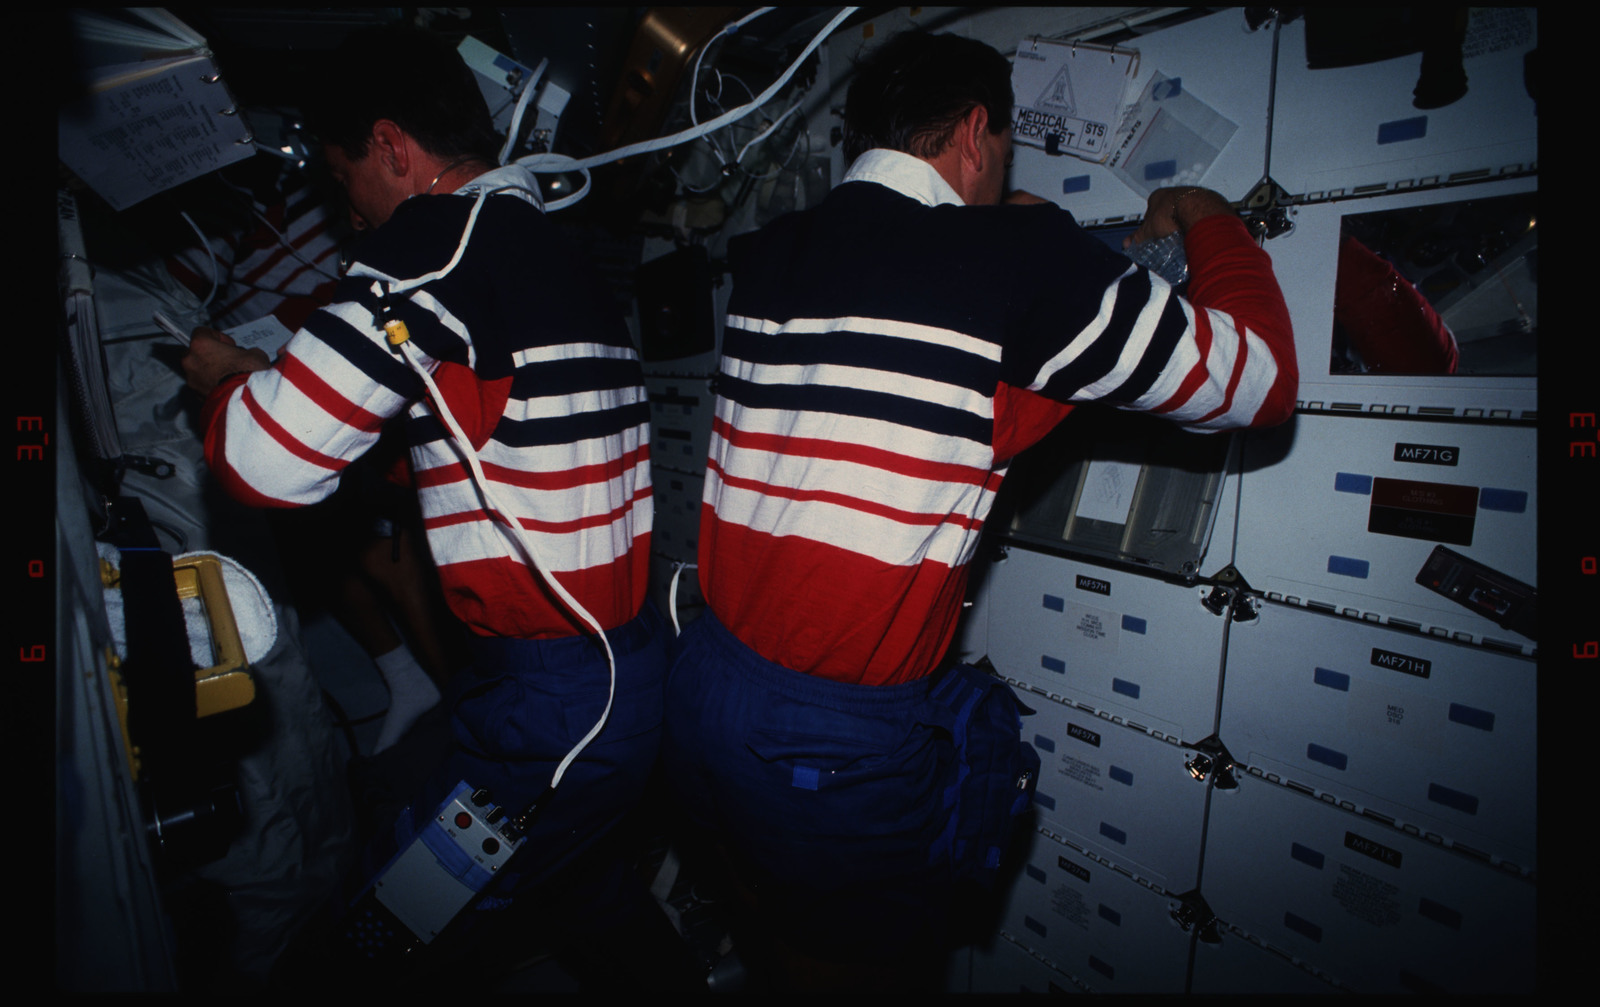 STS044-16-034 - STS-044 - STS-44 Pilot Henricks and PS Hennen work on OV-104's middeck